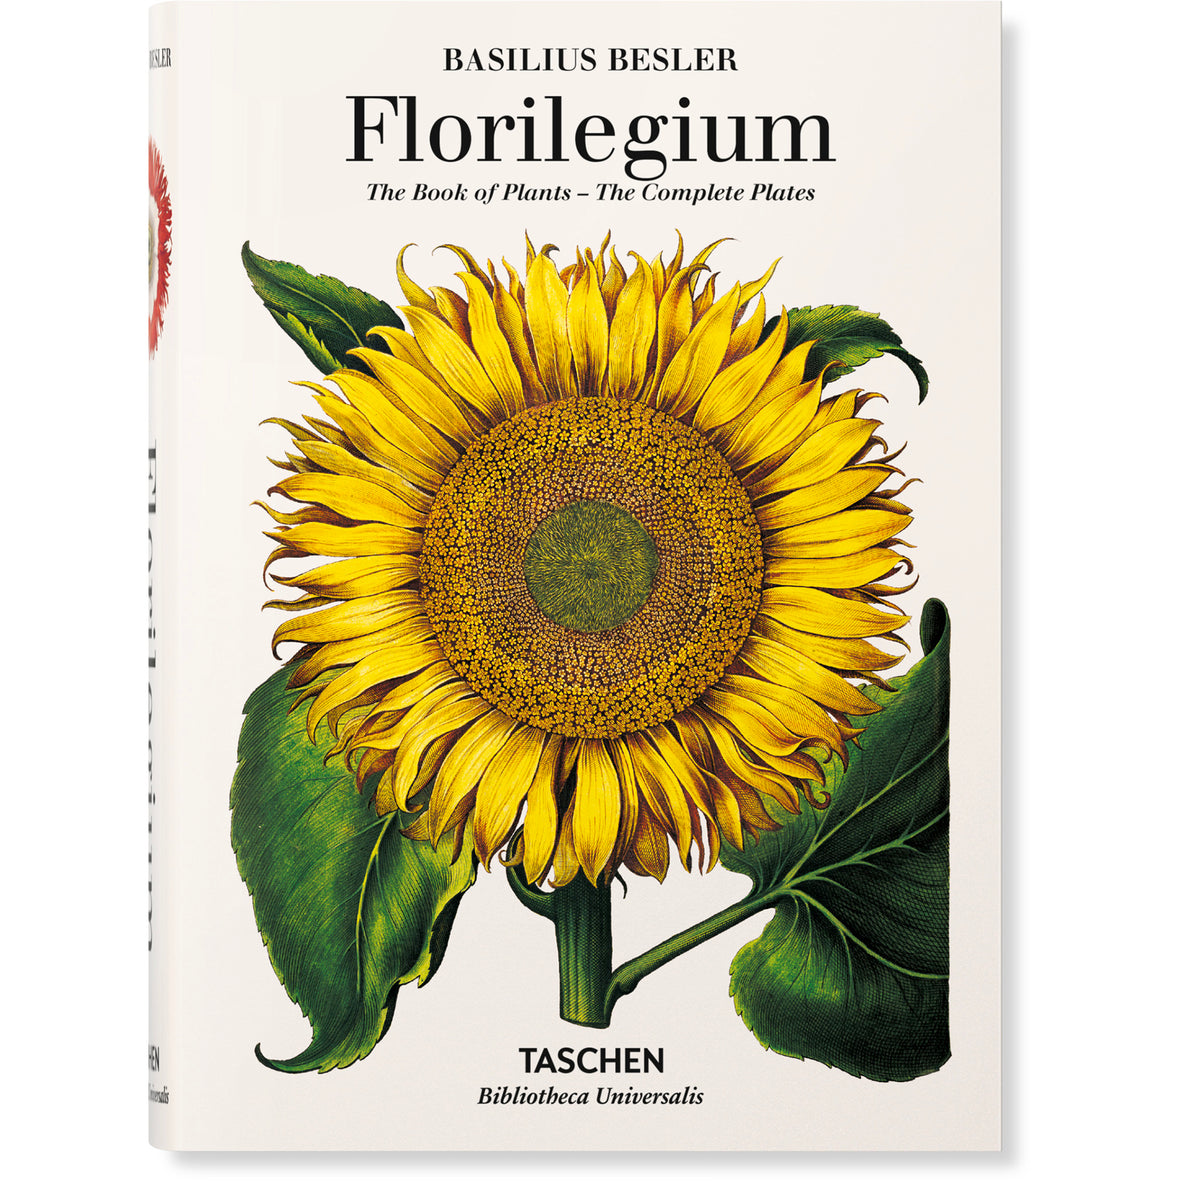 Basilius Beslers Florilegium: The Book of Plants